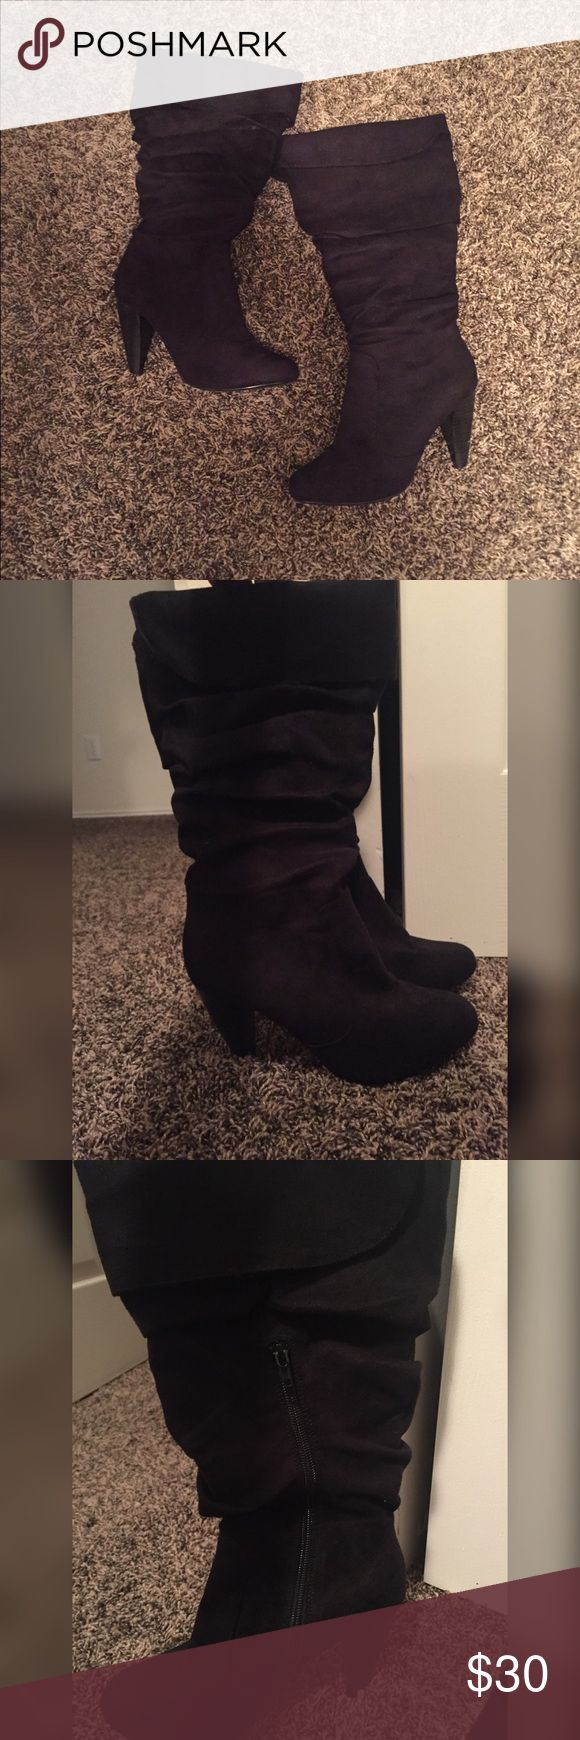 Black Soft Suede Heel Boots These are black soft suede heeled boots. The heel is about 3.5 inches tall. The boots are very comfortable to wear. They have a zipper on the inner side of the boot for easy application. These boots are from Charlotte Russe. Please let me know if you want to bundle items so we can save you some money on shipping! Charlotte Russe Shoes Heeled Boots